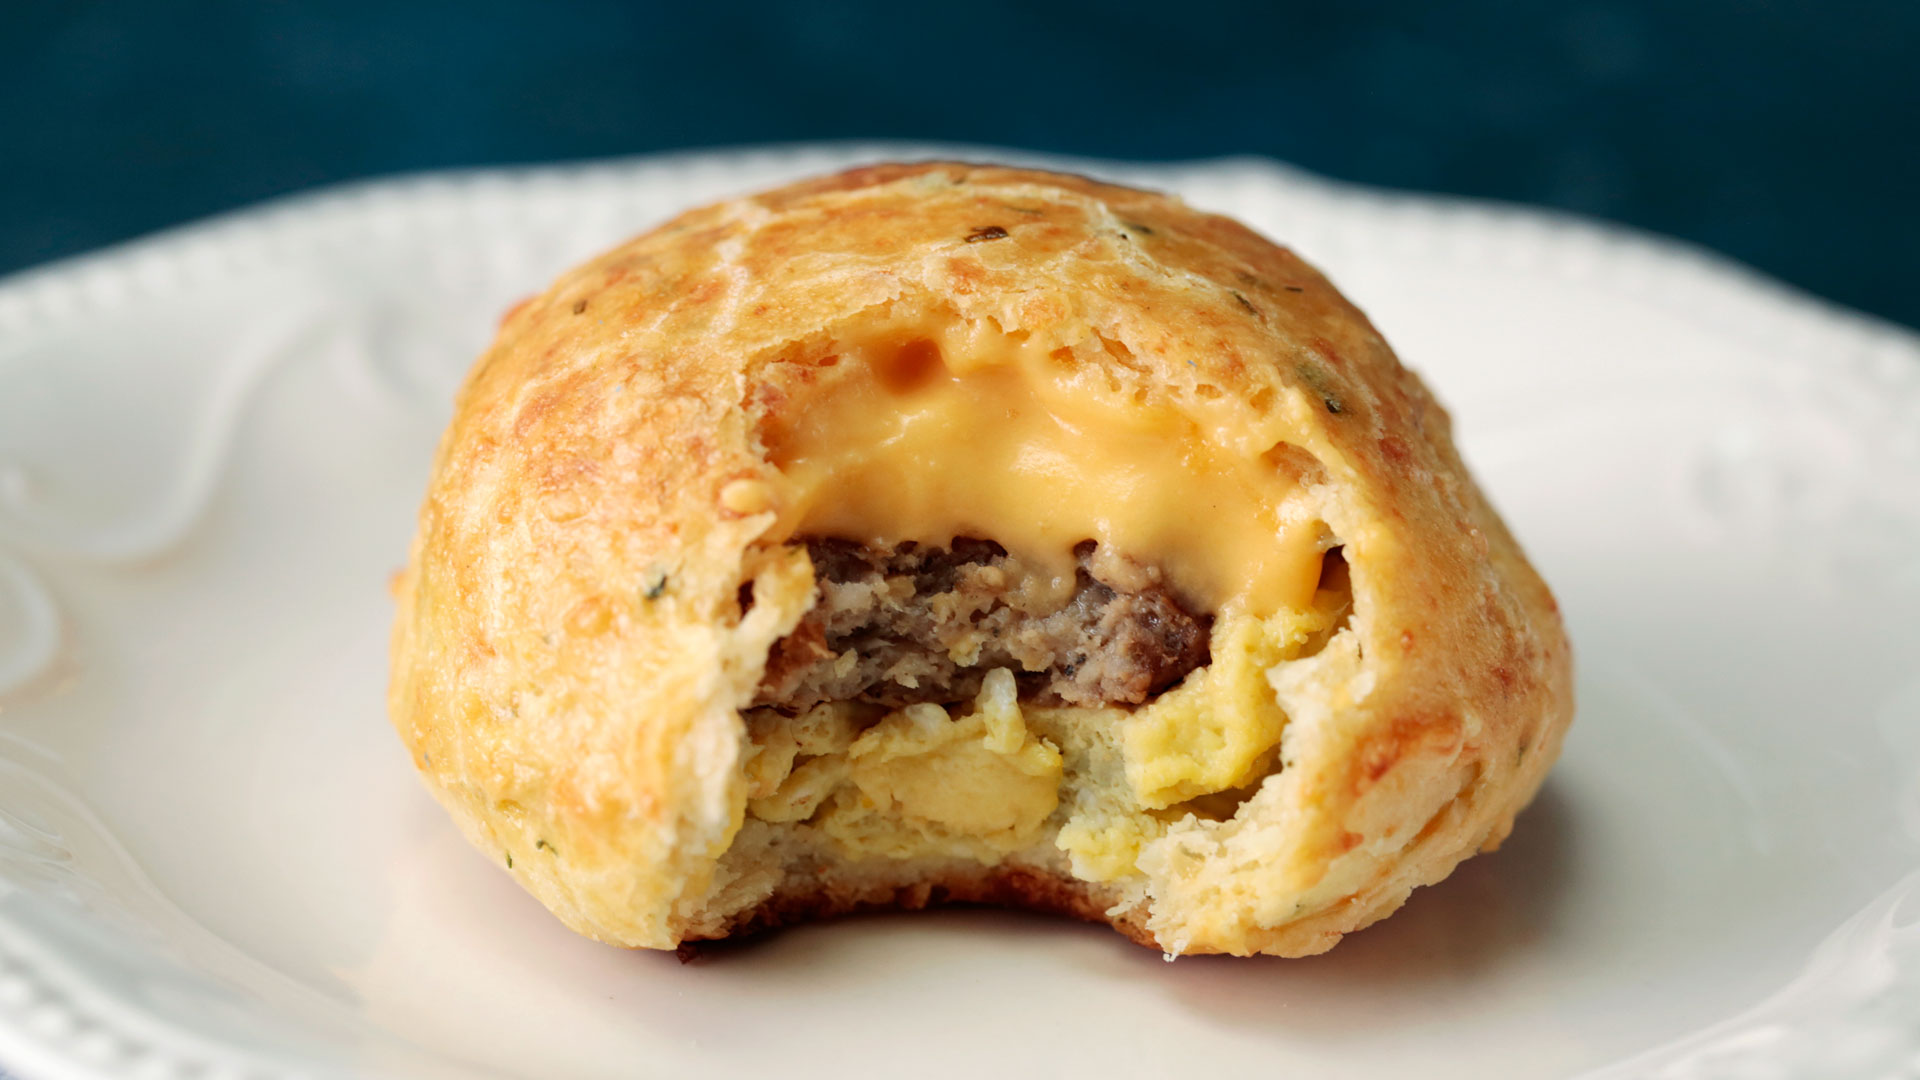 Sausage Egg And Cheese Stuffed Biscuits Tastemade